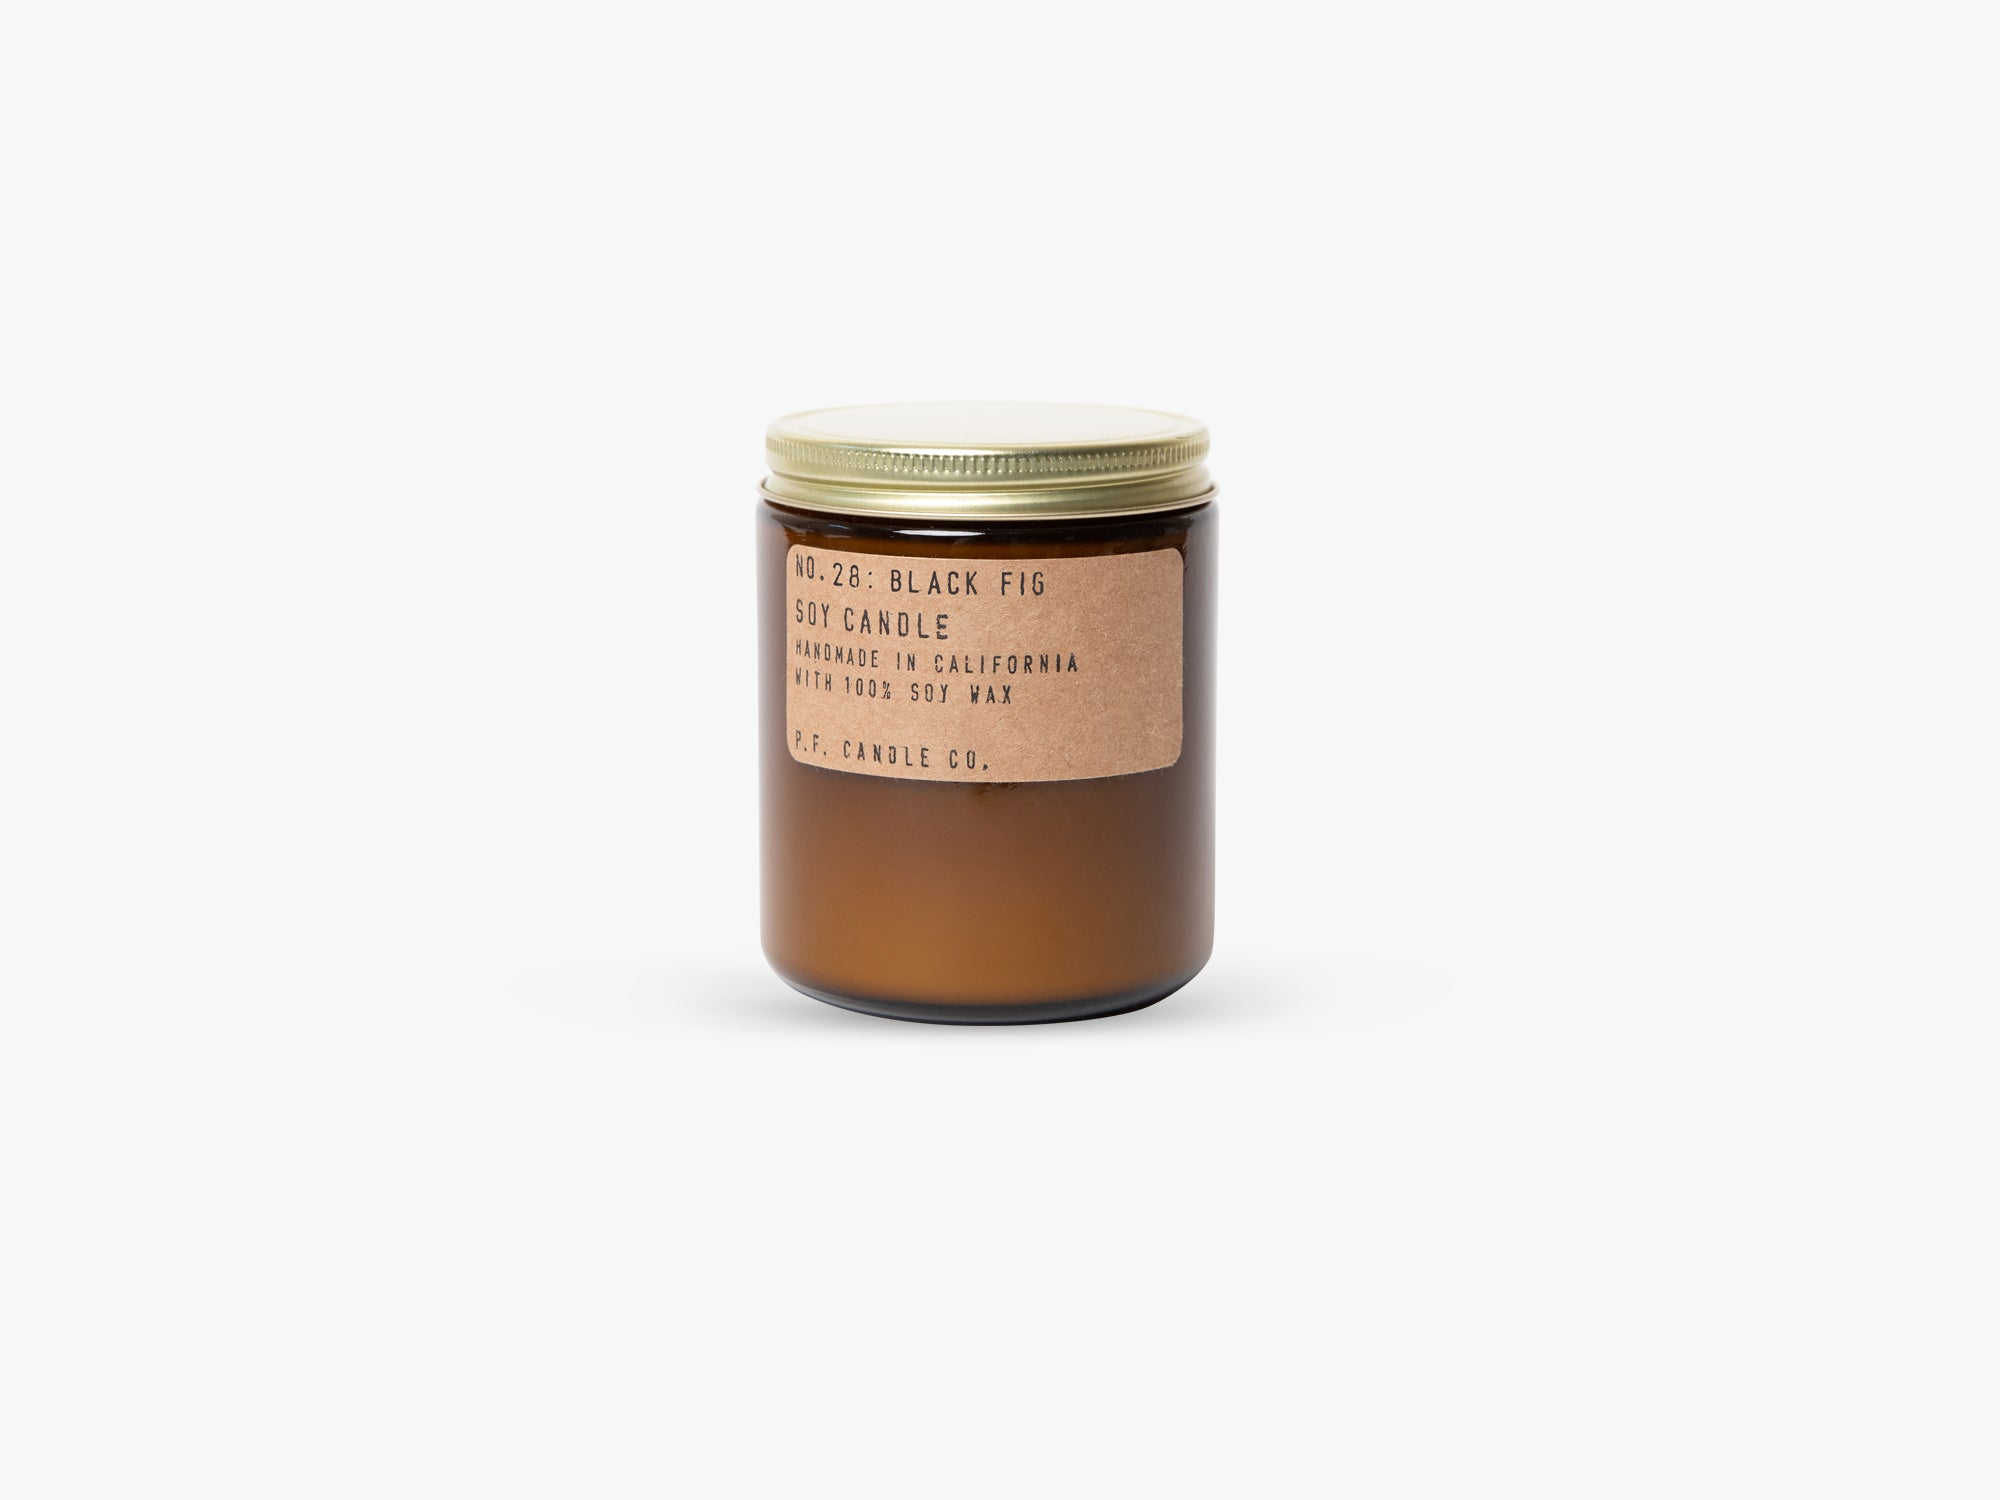 Black Fig, Ø7,3 fra P.F. Candle Co.